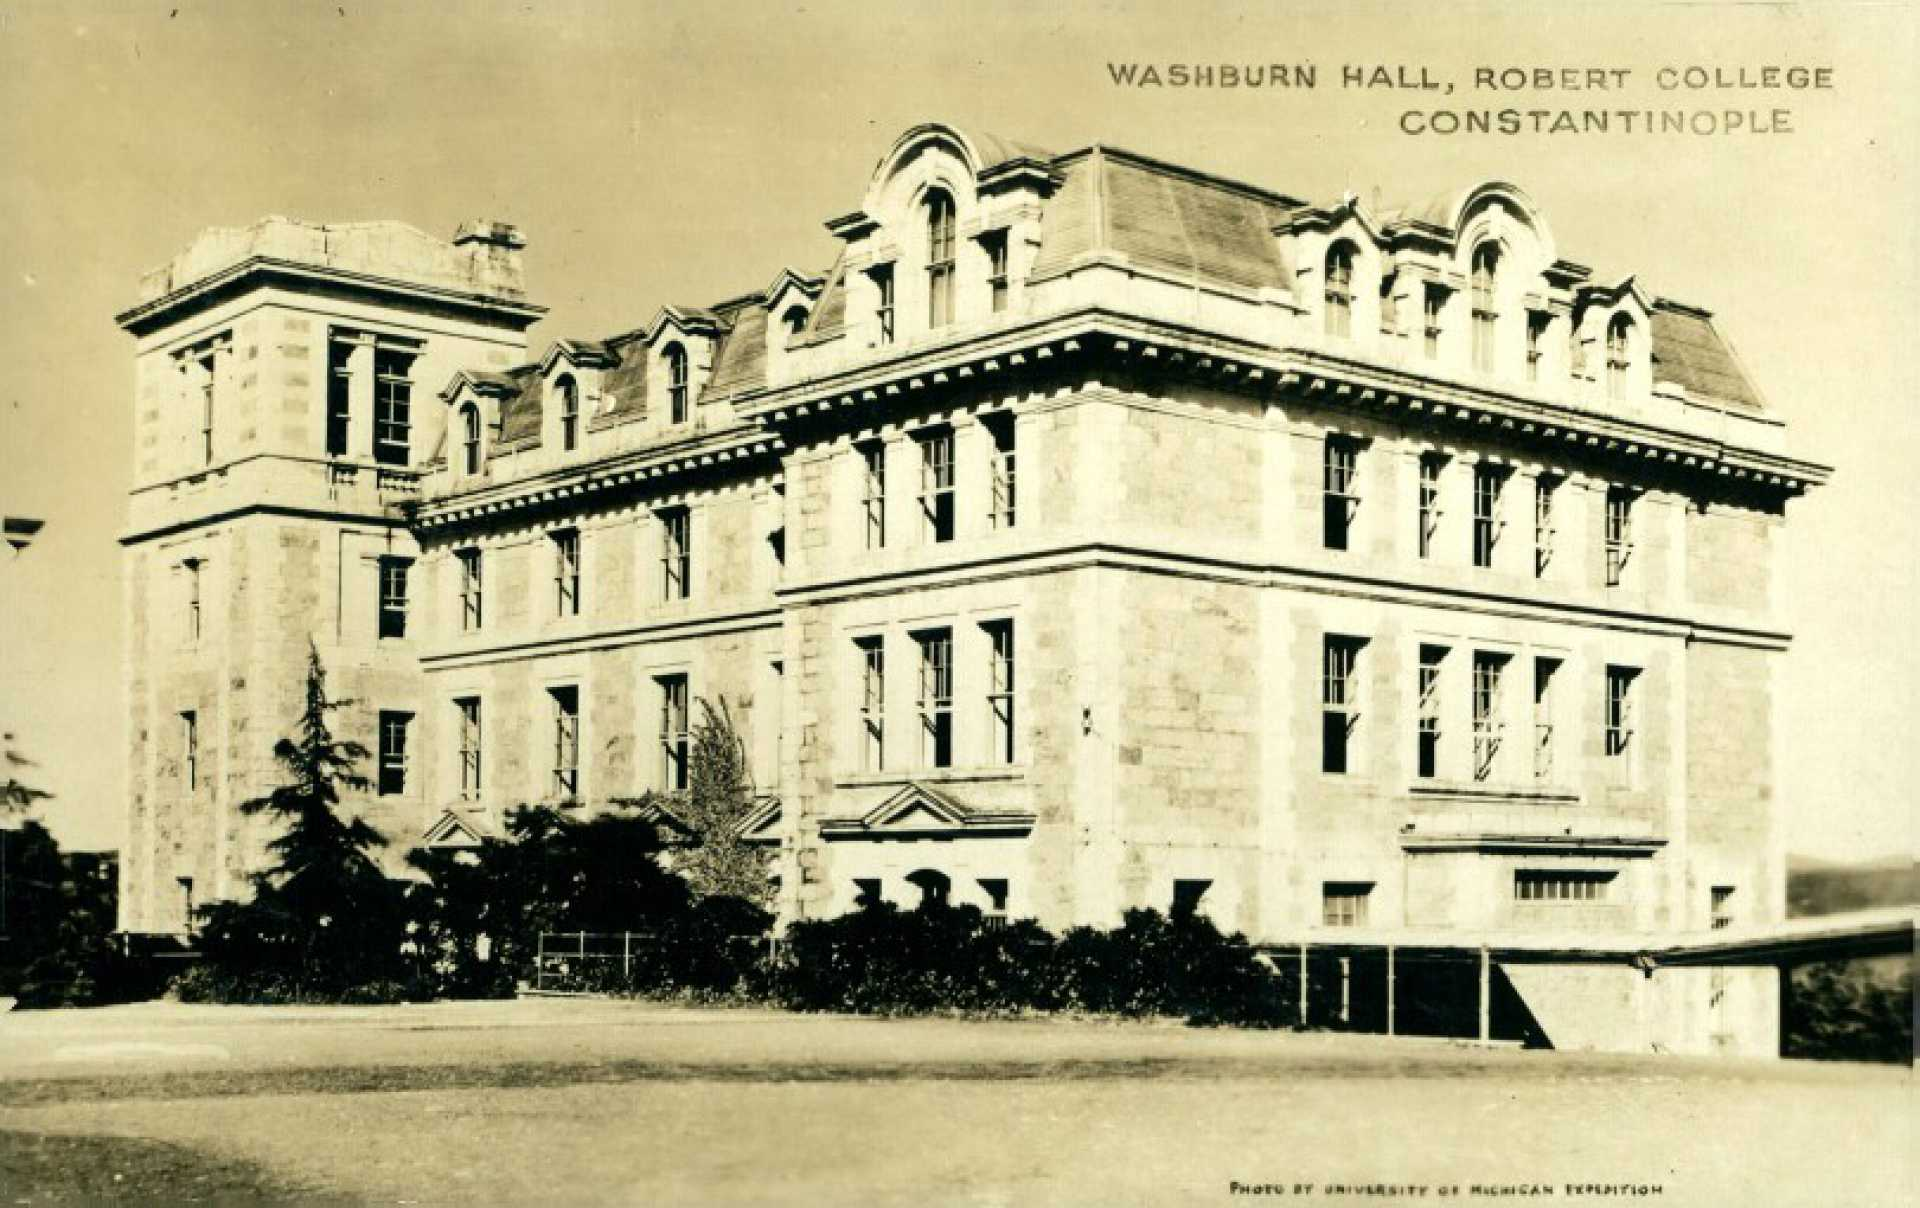 Washburn Hall. Robert College Constantinople